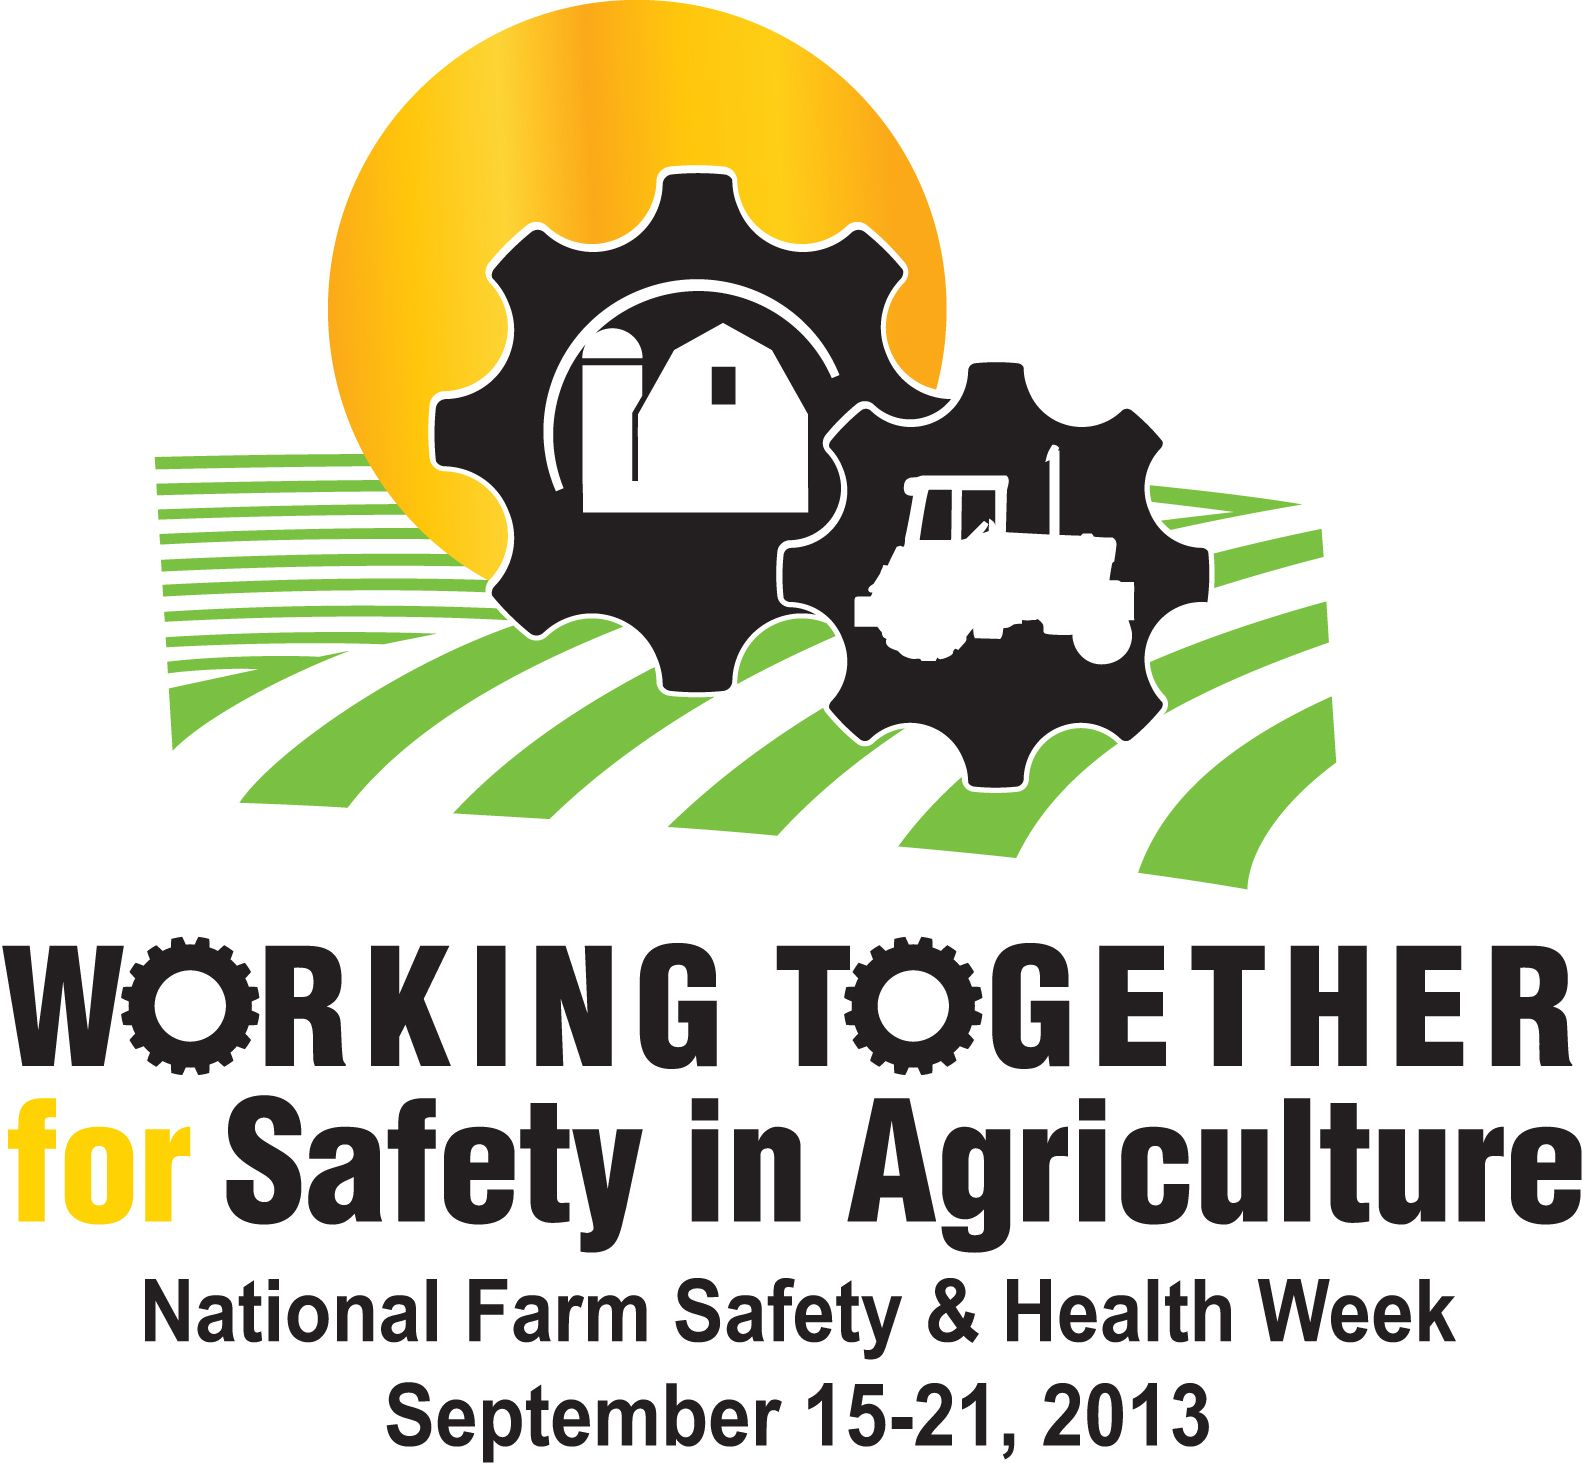 National Farm Safety & Health Week is September 1521